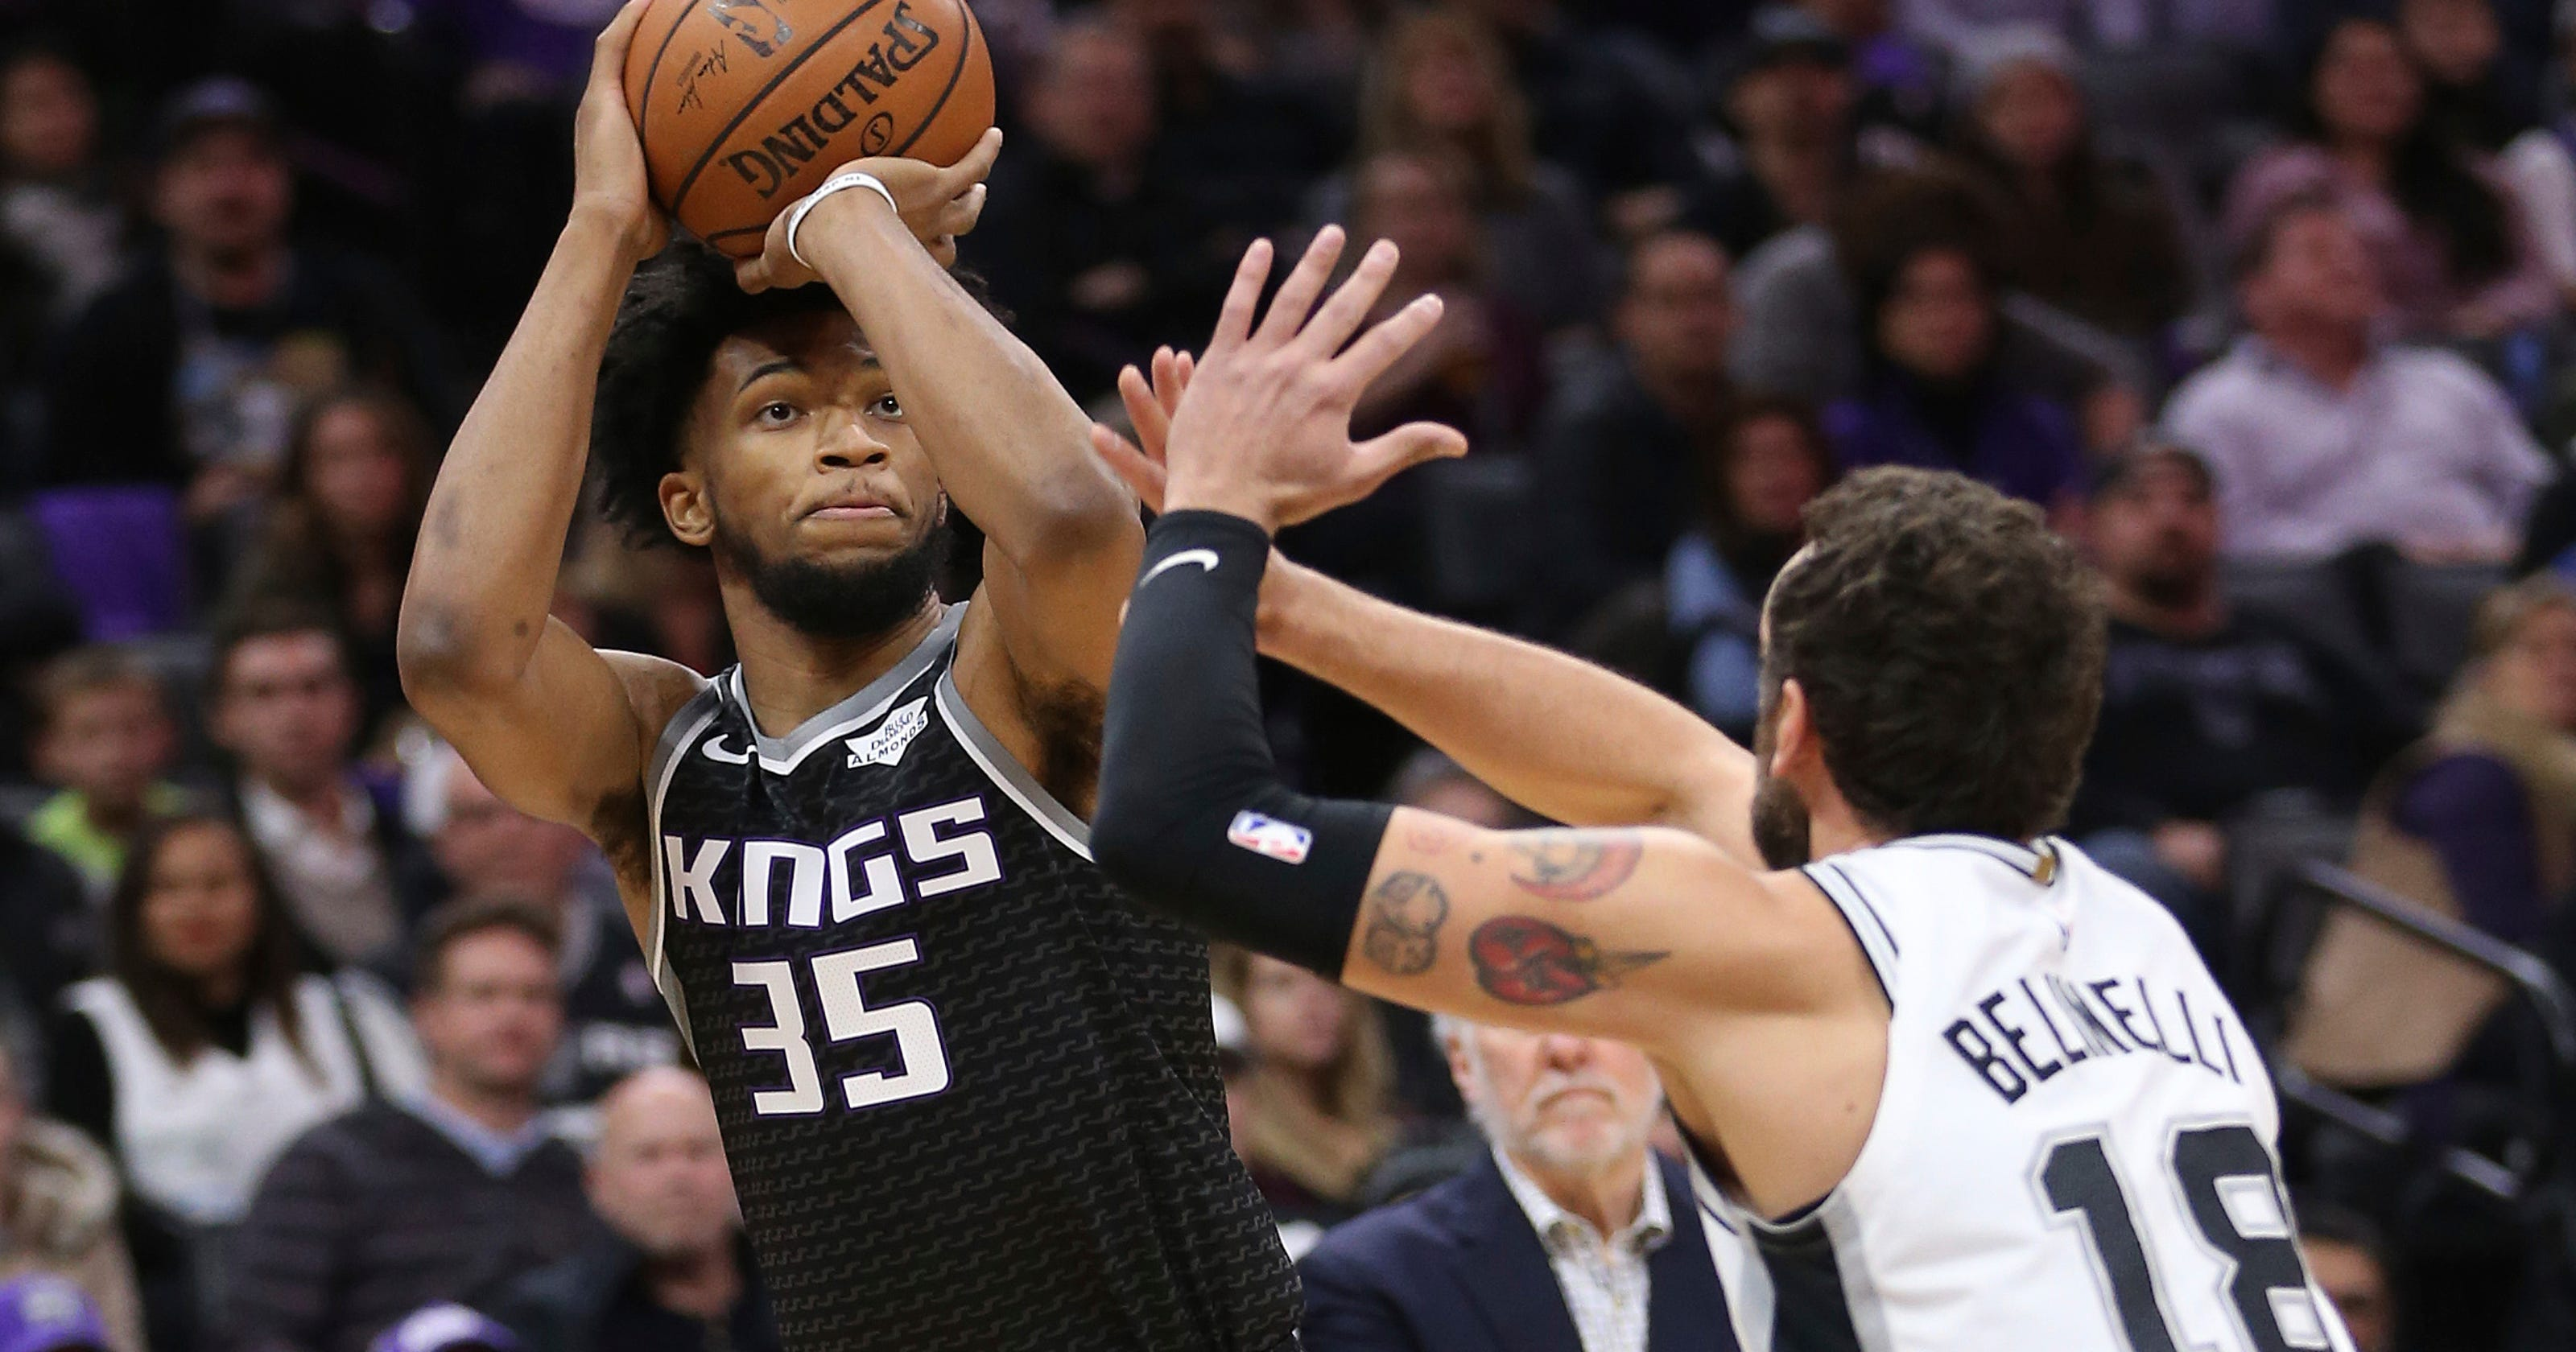 bfa16262fc1 Bagley s career-high 24 points lead Kings past Spurs 127-112